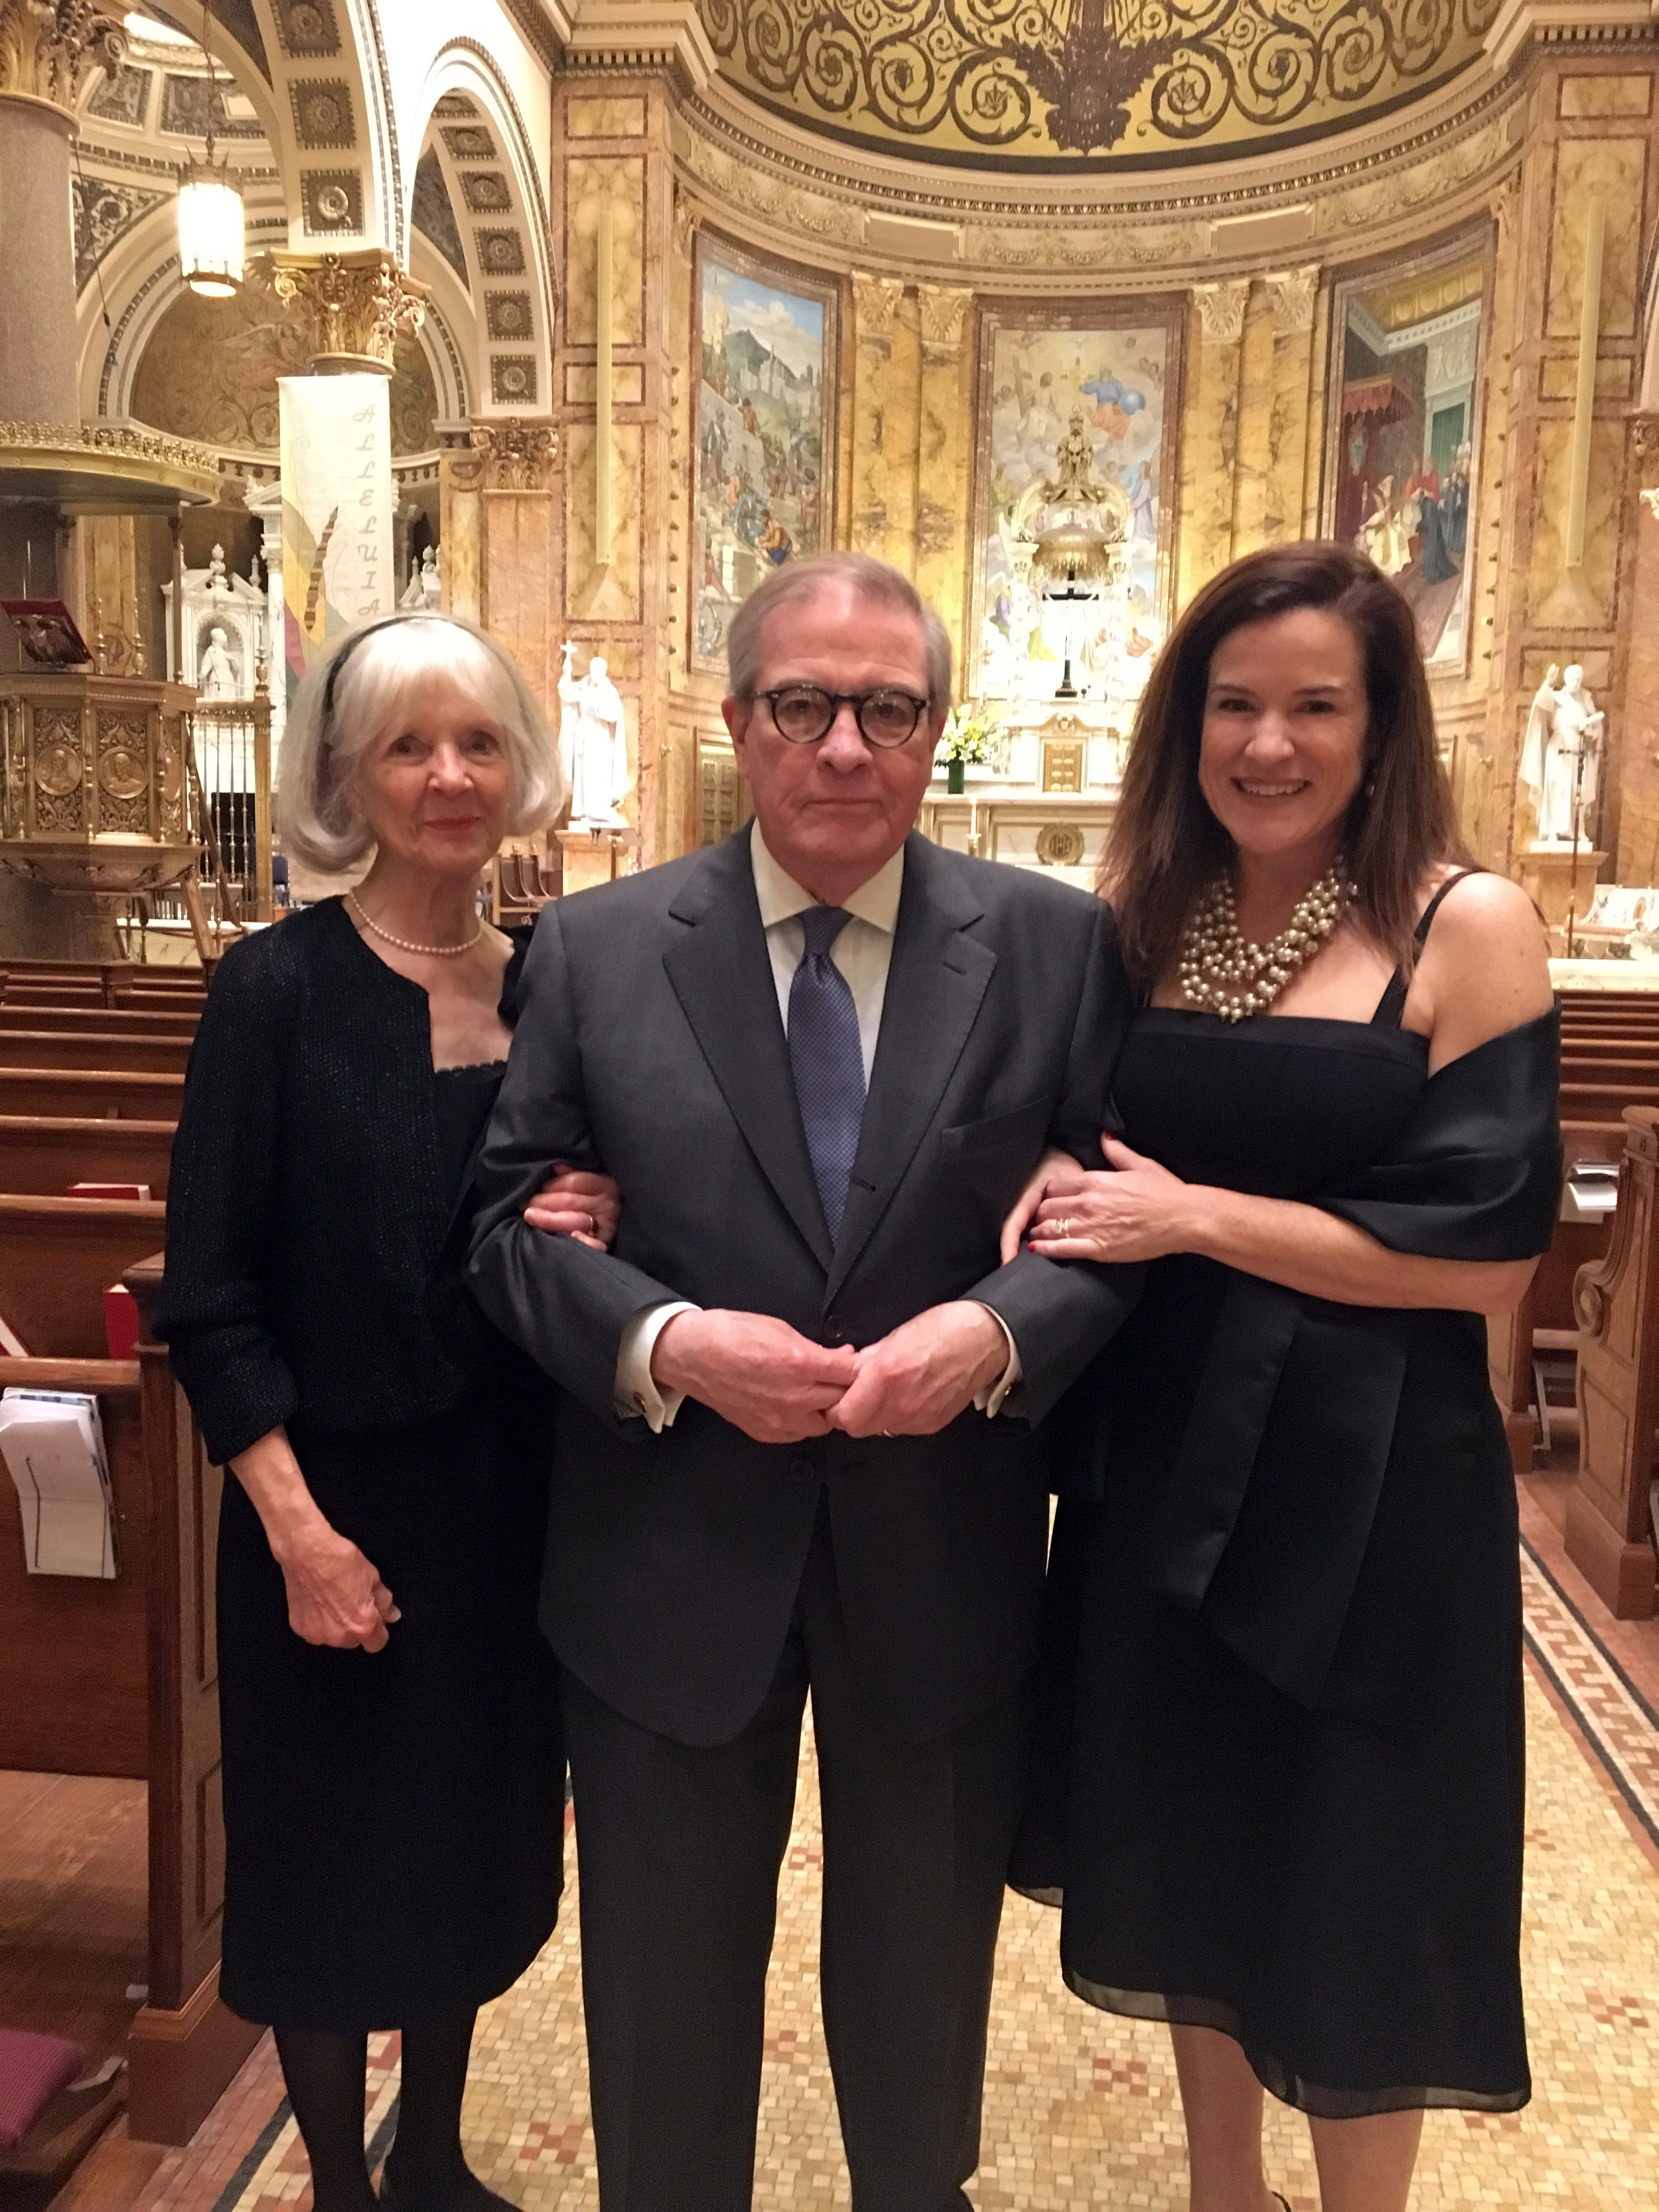 G.G & PAPA & LIZ:  St Ignatius Loyola Church, New York, NY